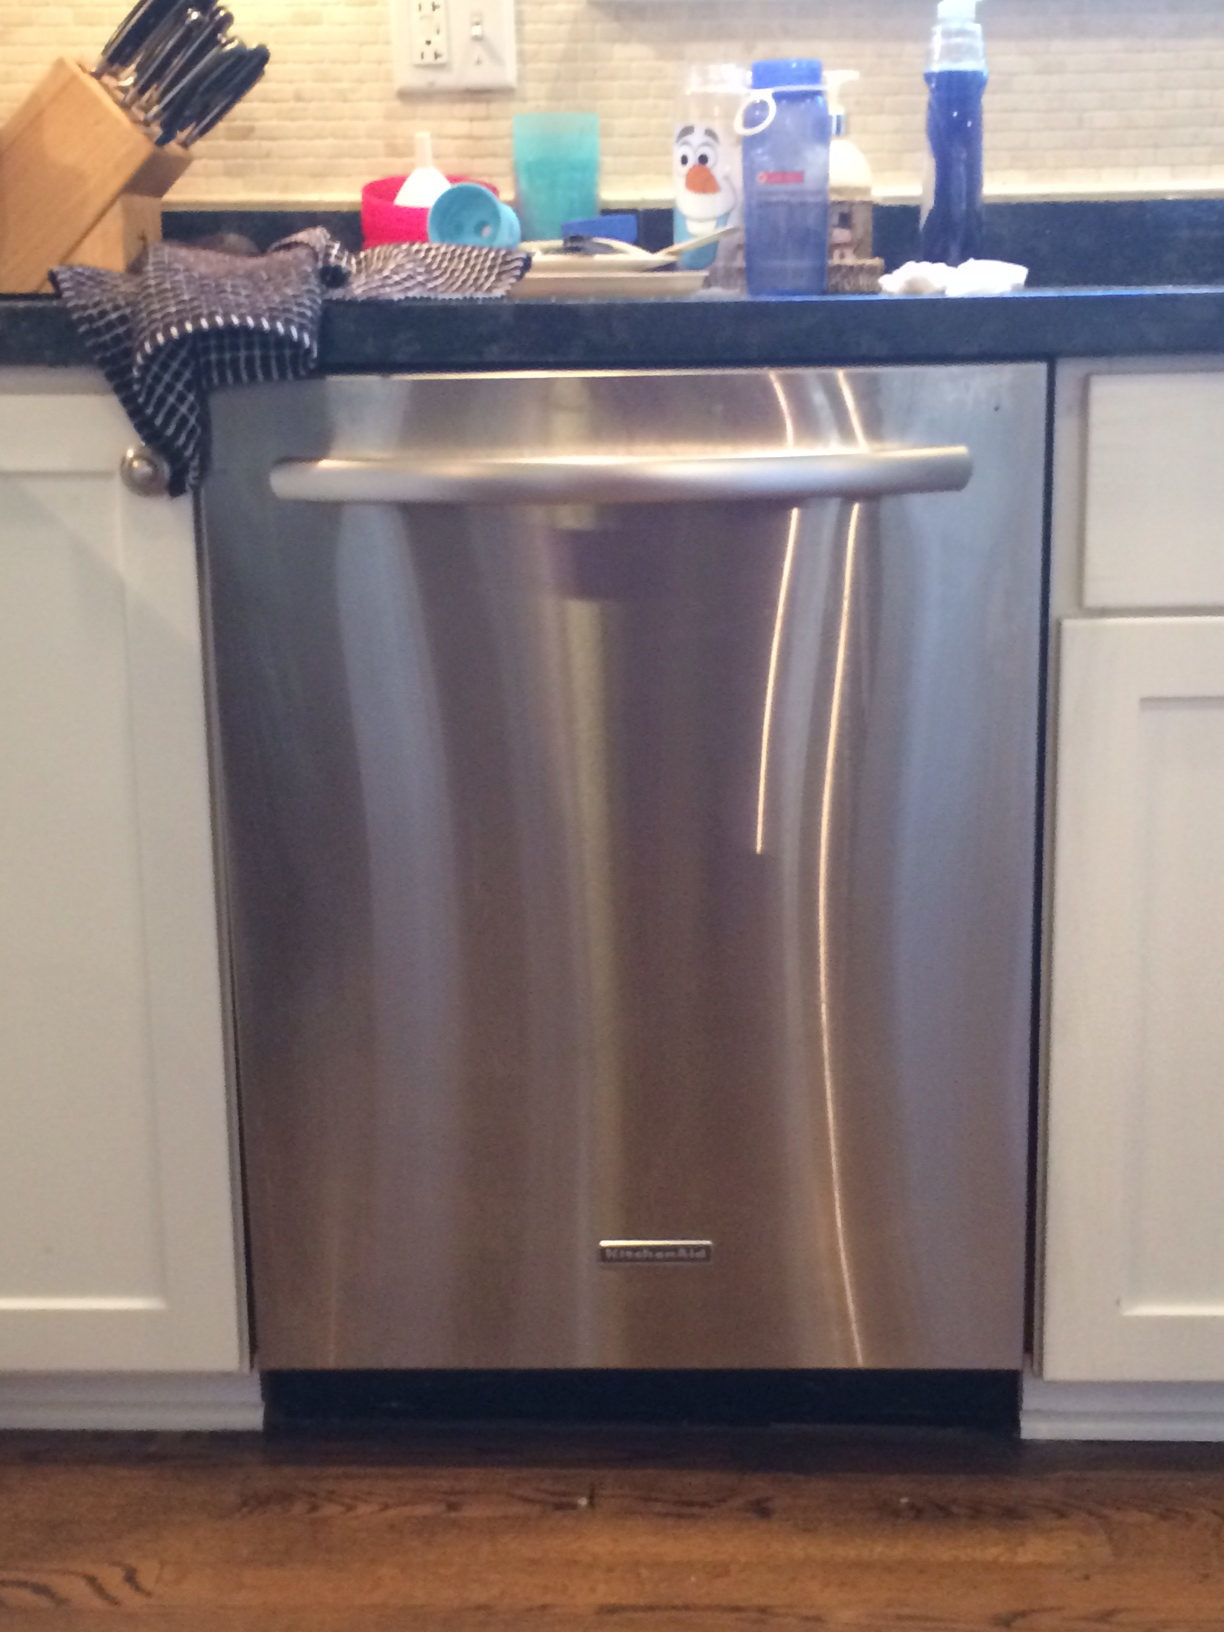 top 832 complaints and reviews about kitchenaid dishwashers | page 8